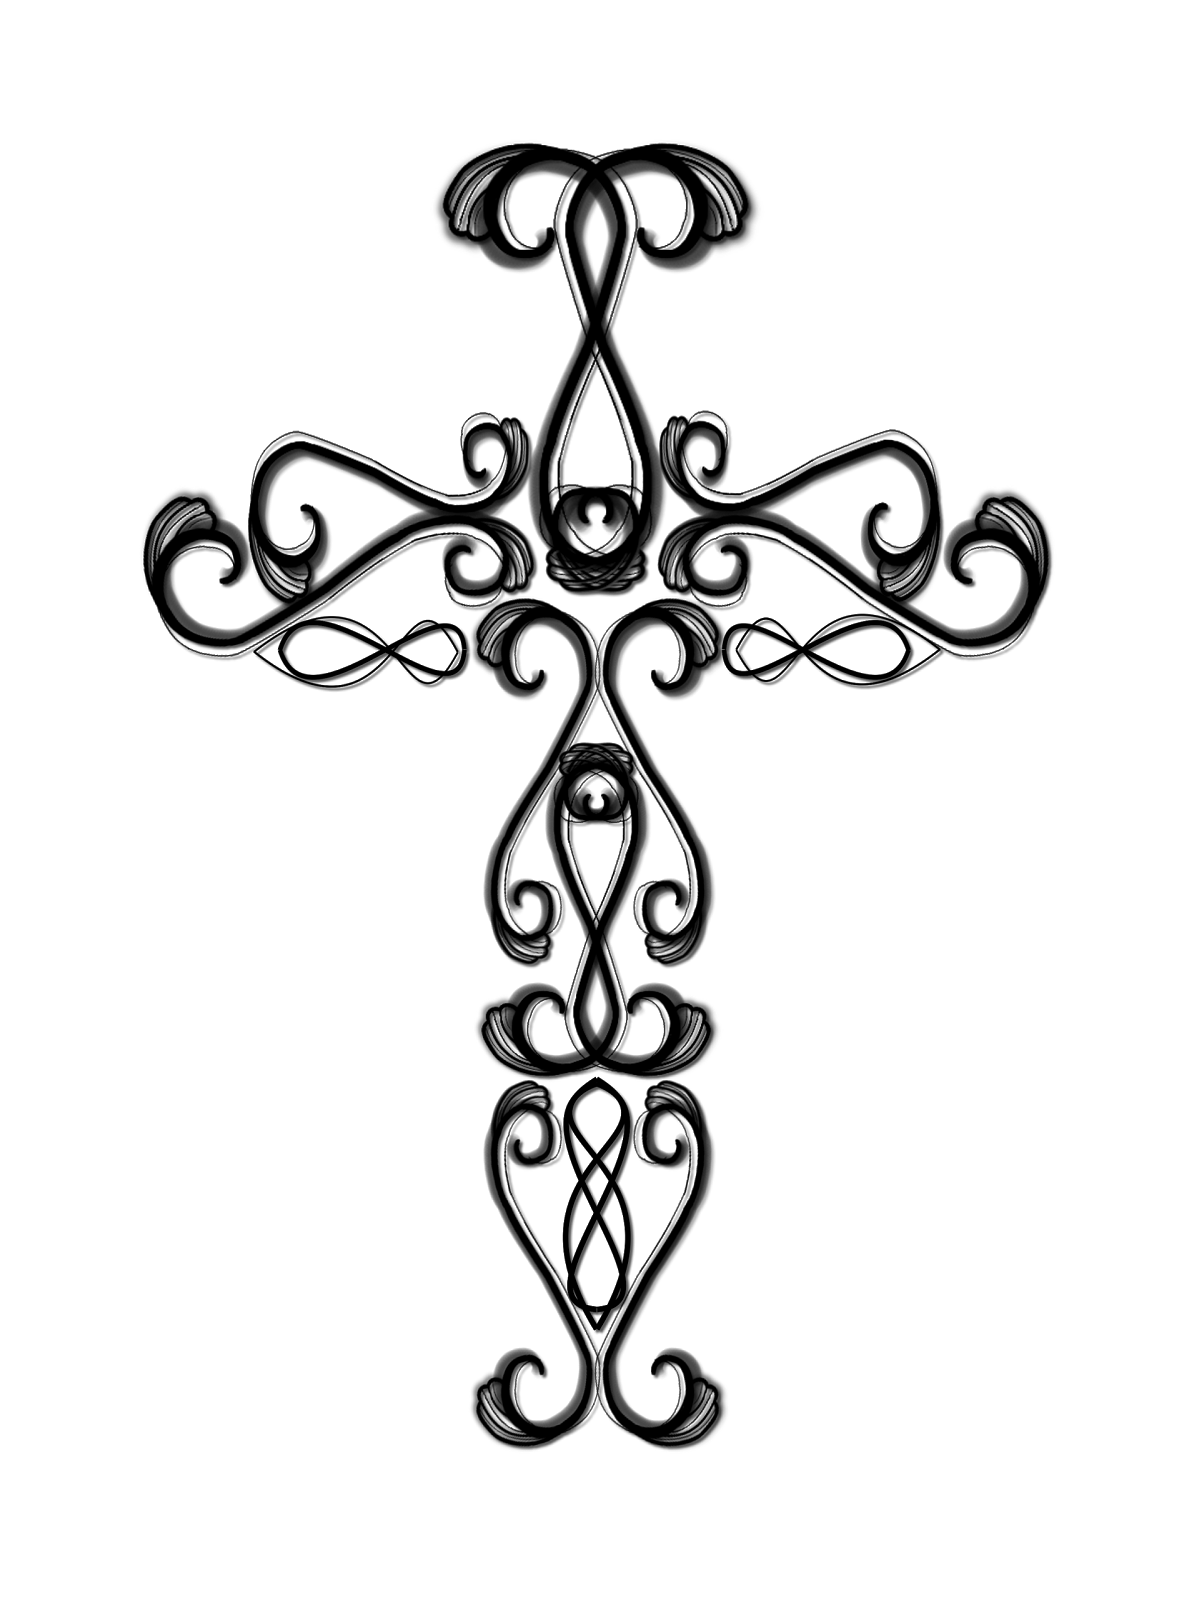 roman catholic cross designs free download best roman catholic cross designs on. Black Bedroom Furniture Sets. Home Design Ideas